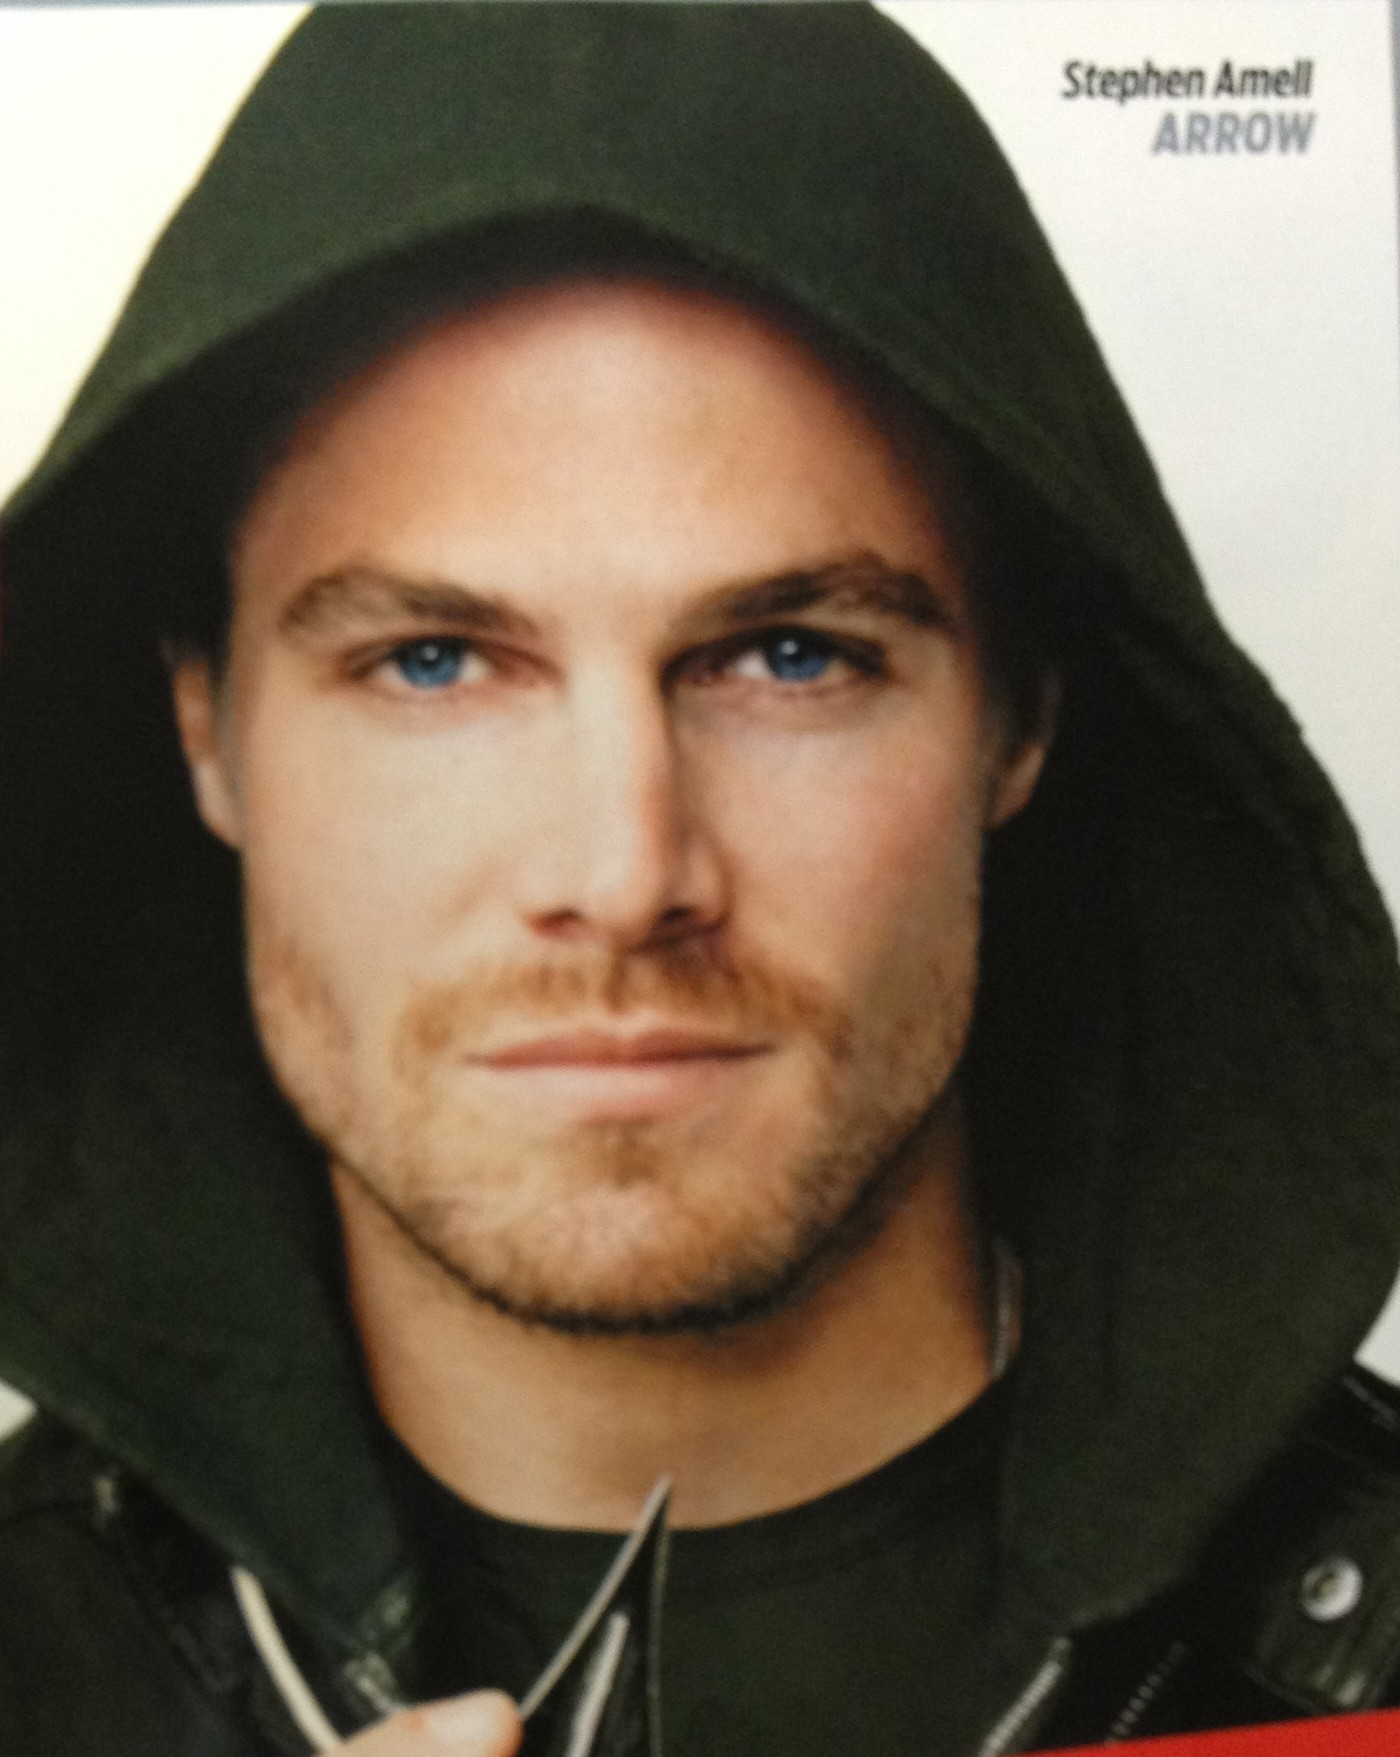 Cover: Stephen Amell of Arrow -- The show I'm most looking forward to this fall!